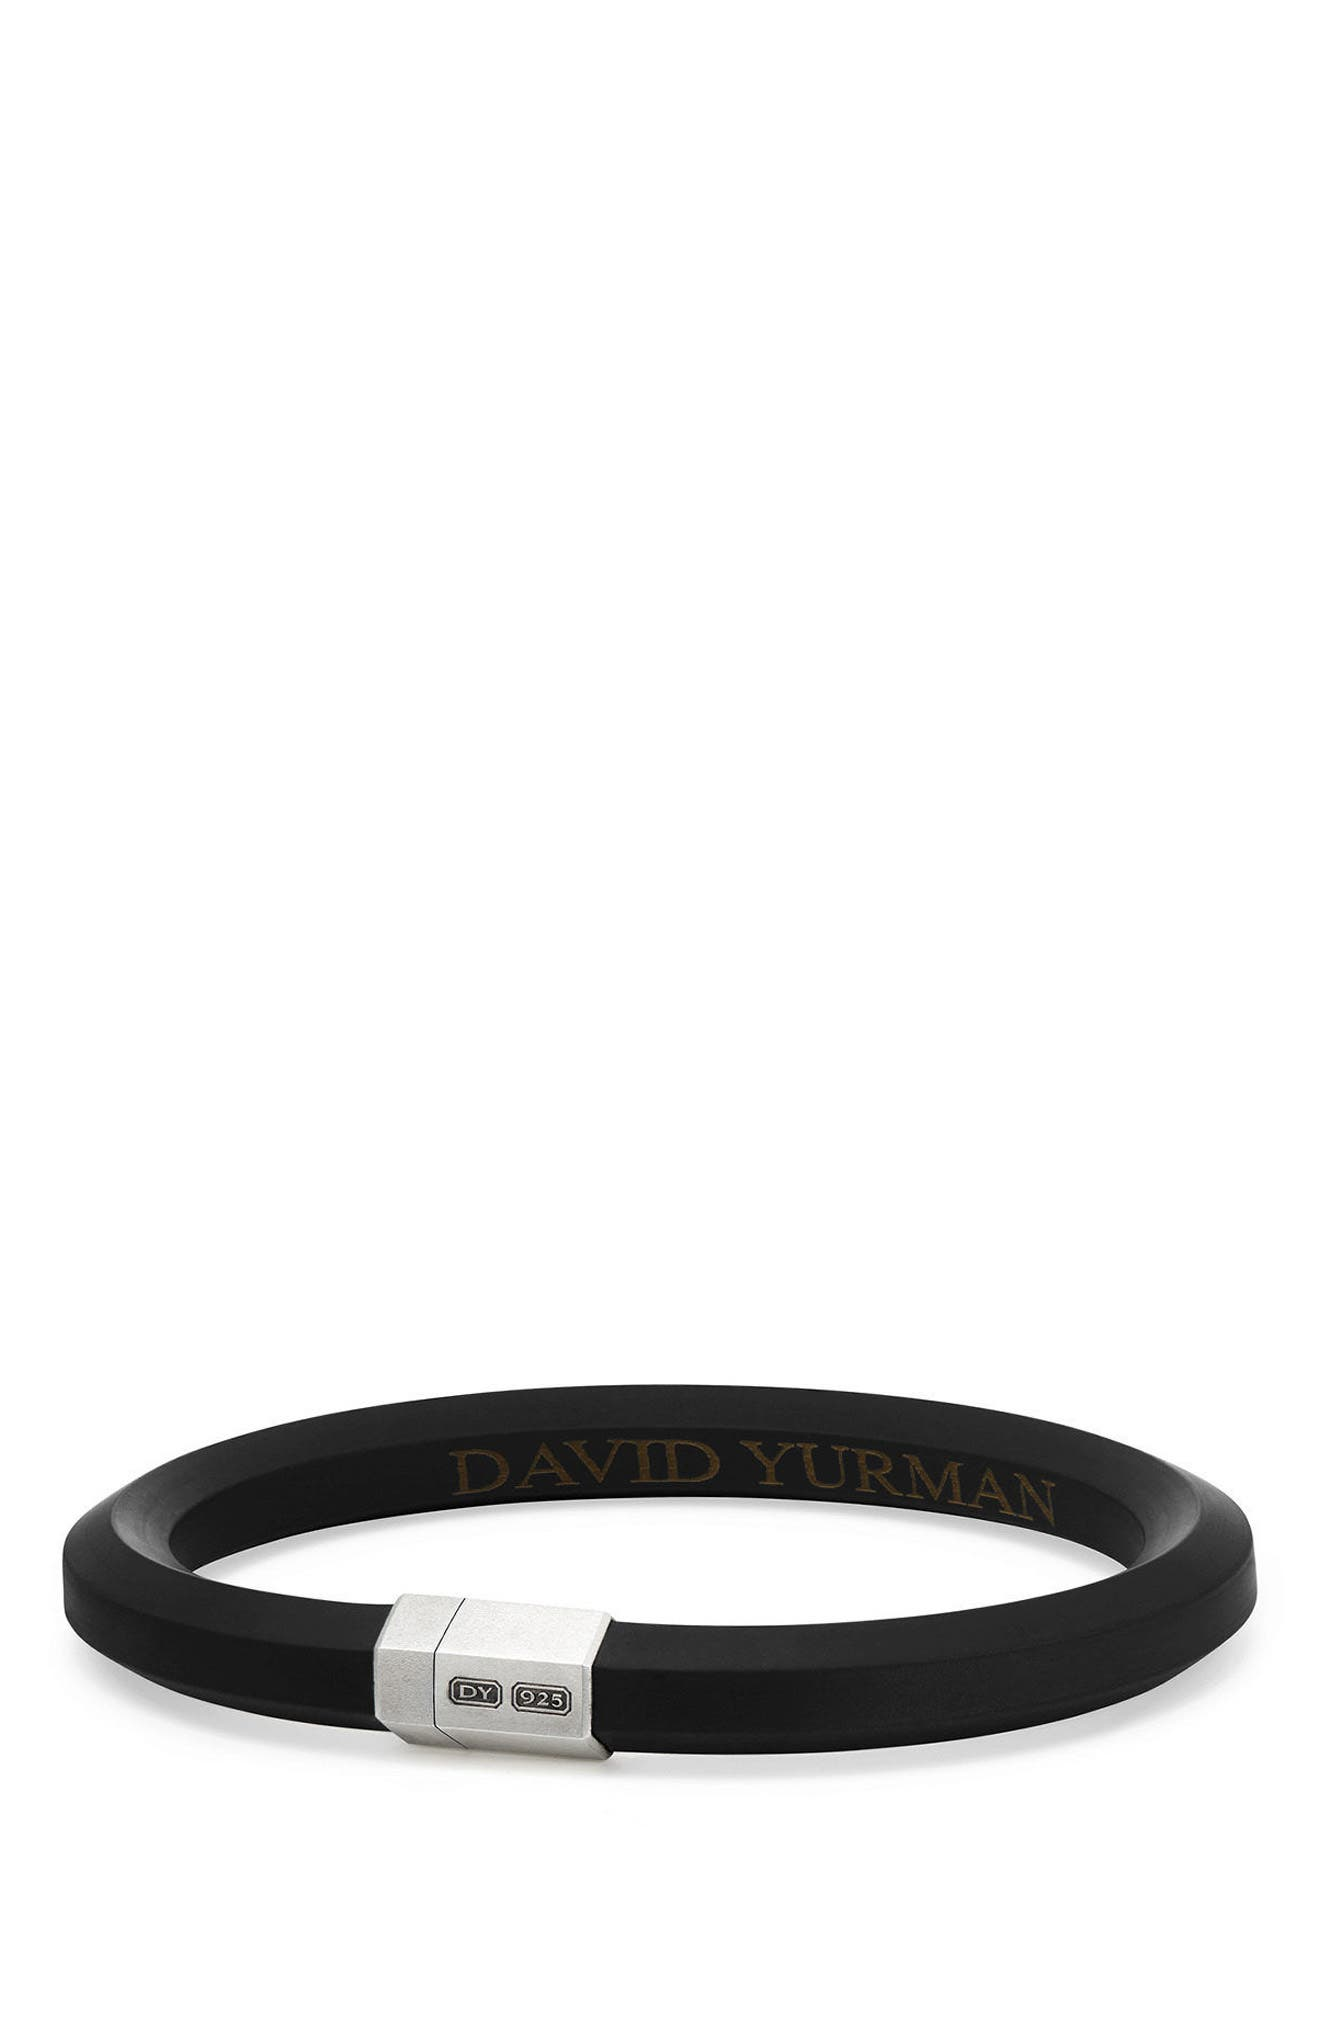 Main Image - David Yurman Streamline Rubber ID Bracelet in Black